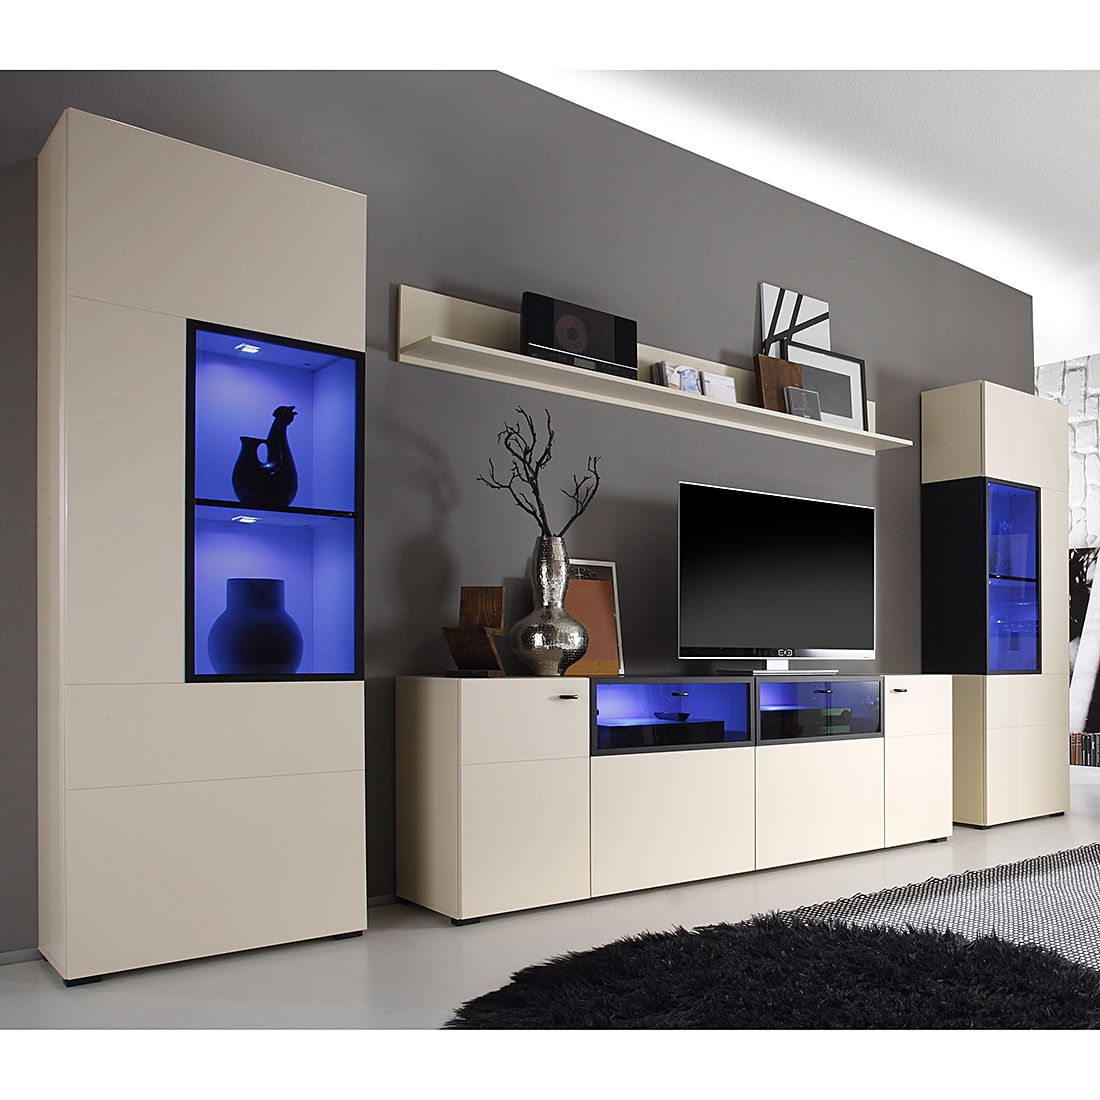 eek a wohnwand aira ii 4 teilig matt beige mit beleuchtung roomscape g nstig online kaufen. Black Bedroom Furniture Sets. Home Design Ideas